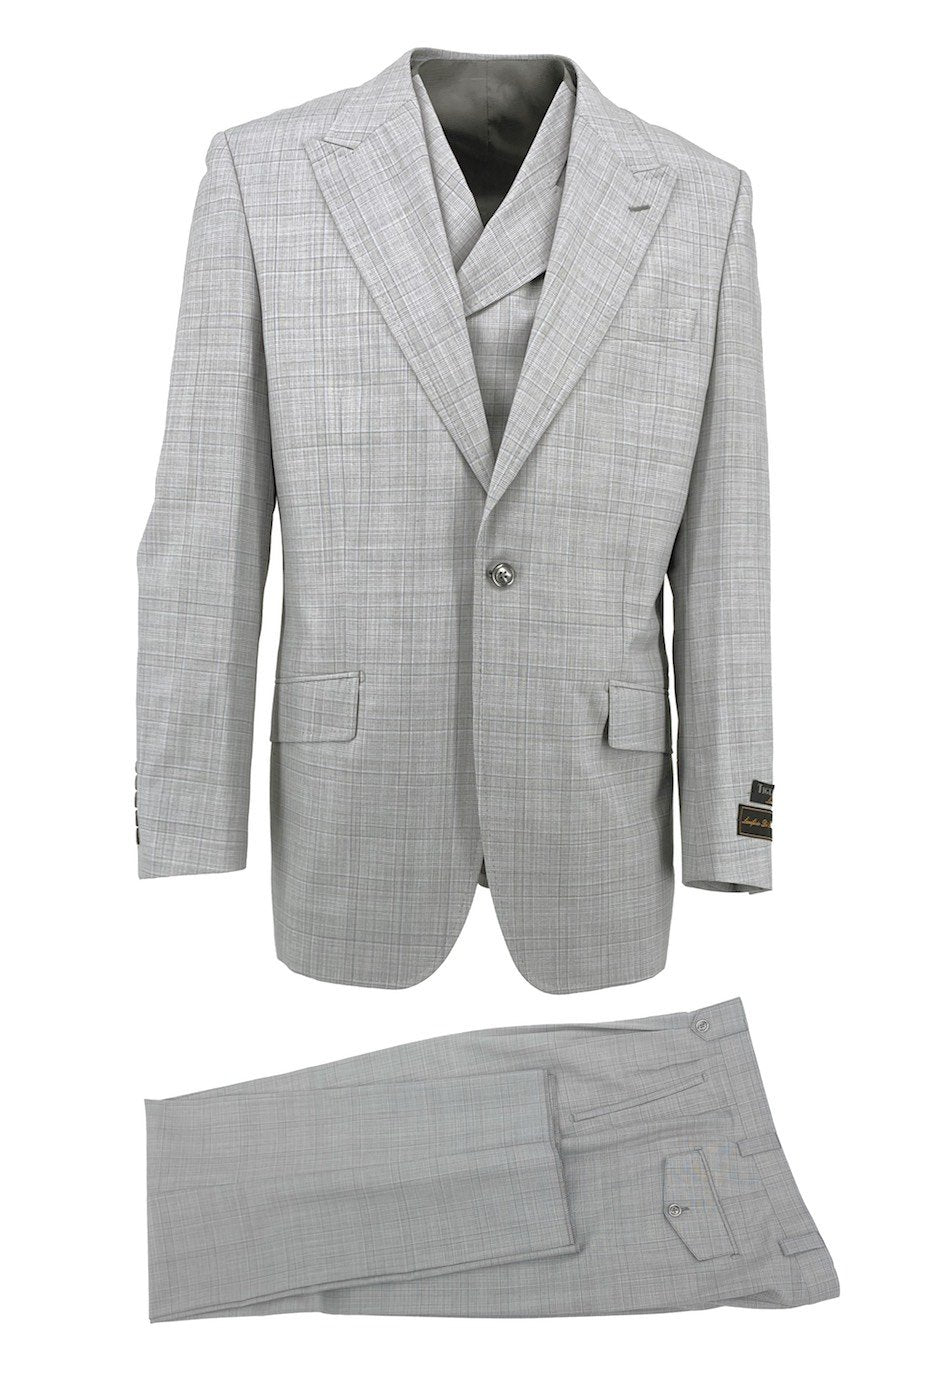 Tiglio Luxe Light Gray with Baby Blue Windowpane San Giovesse Wide Leg, Pure Wool Suit & Vest CV452531 #